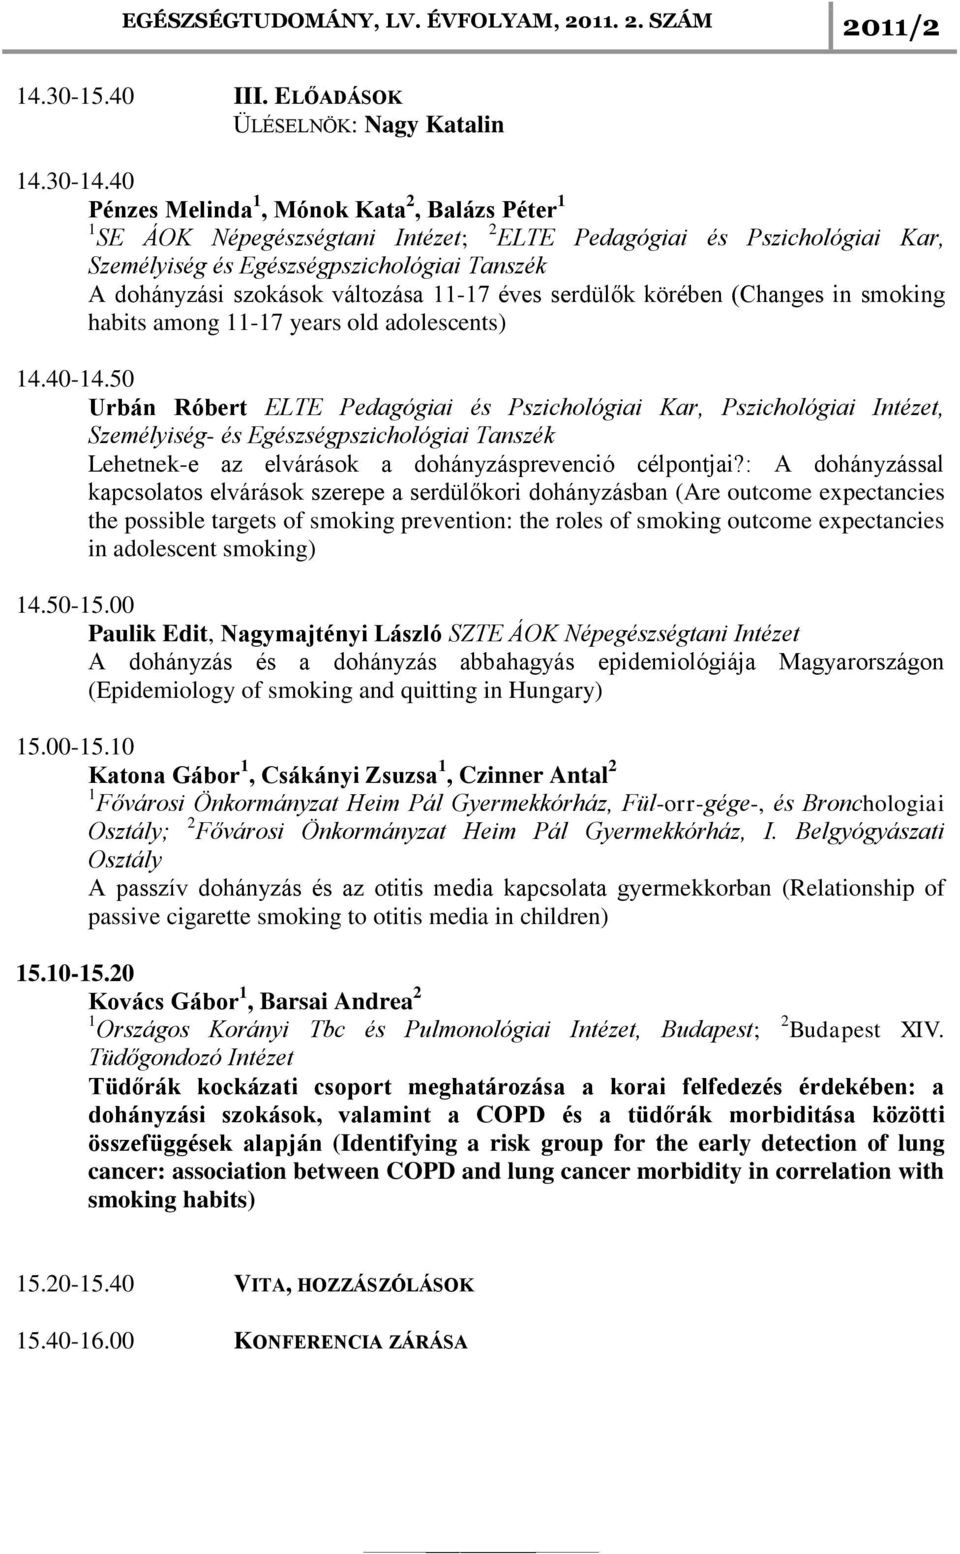 változása 11-17 éves serdülők körében (Changes in smoking habits among 11-17 years old adolescents) 14.40-14.